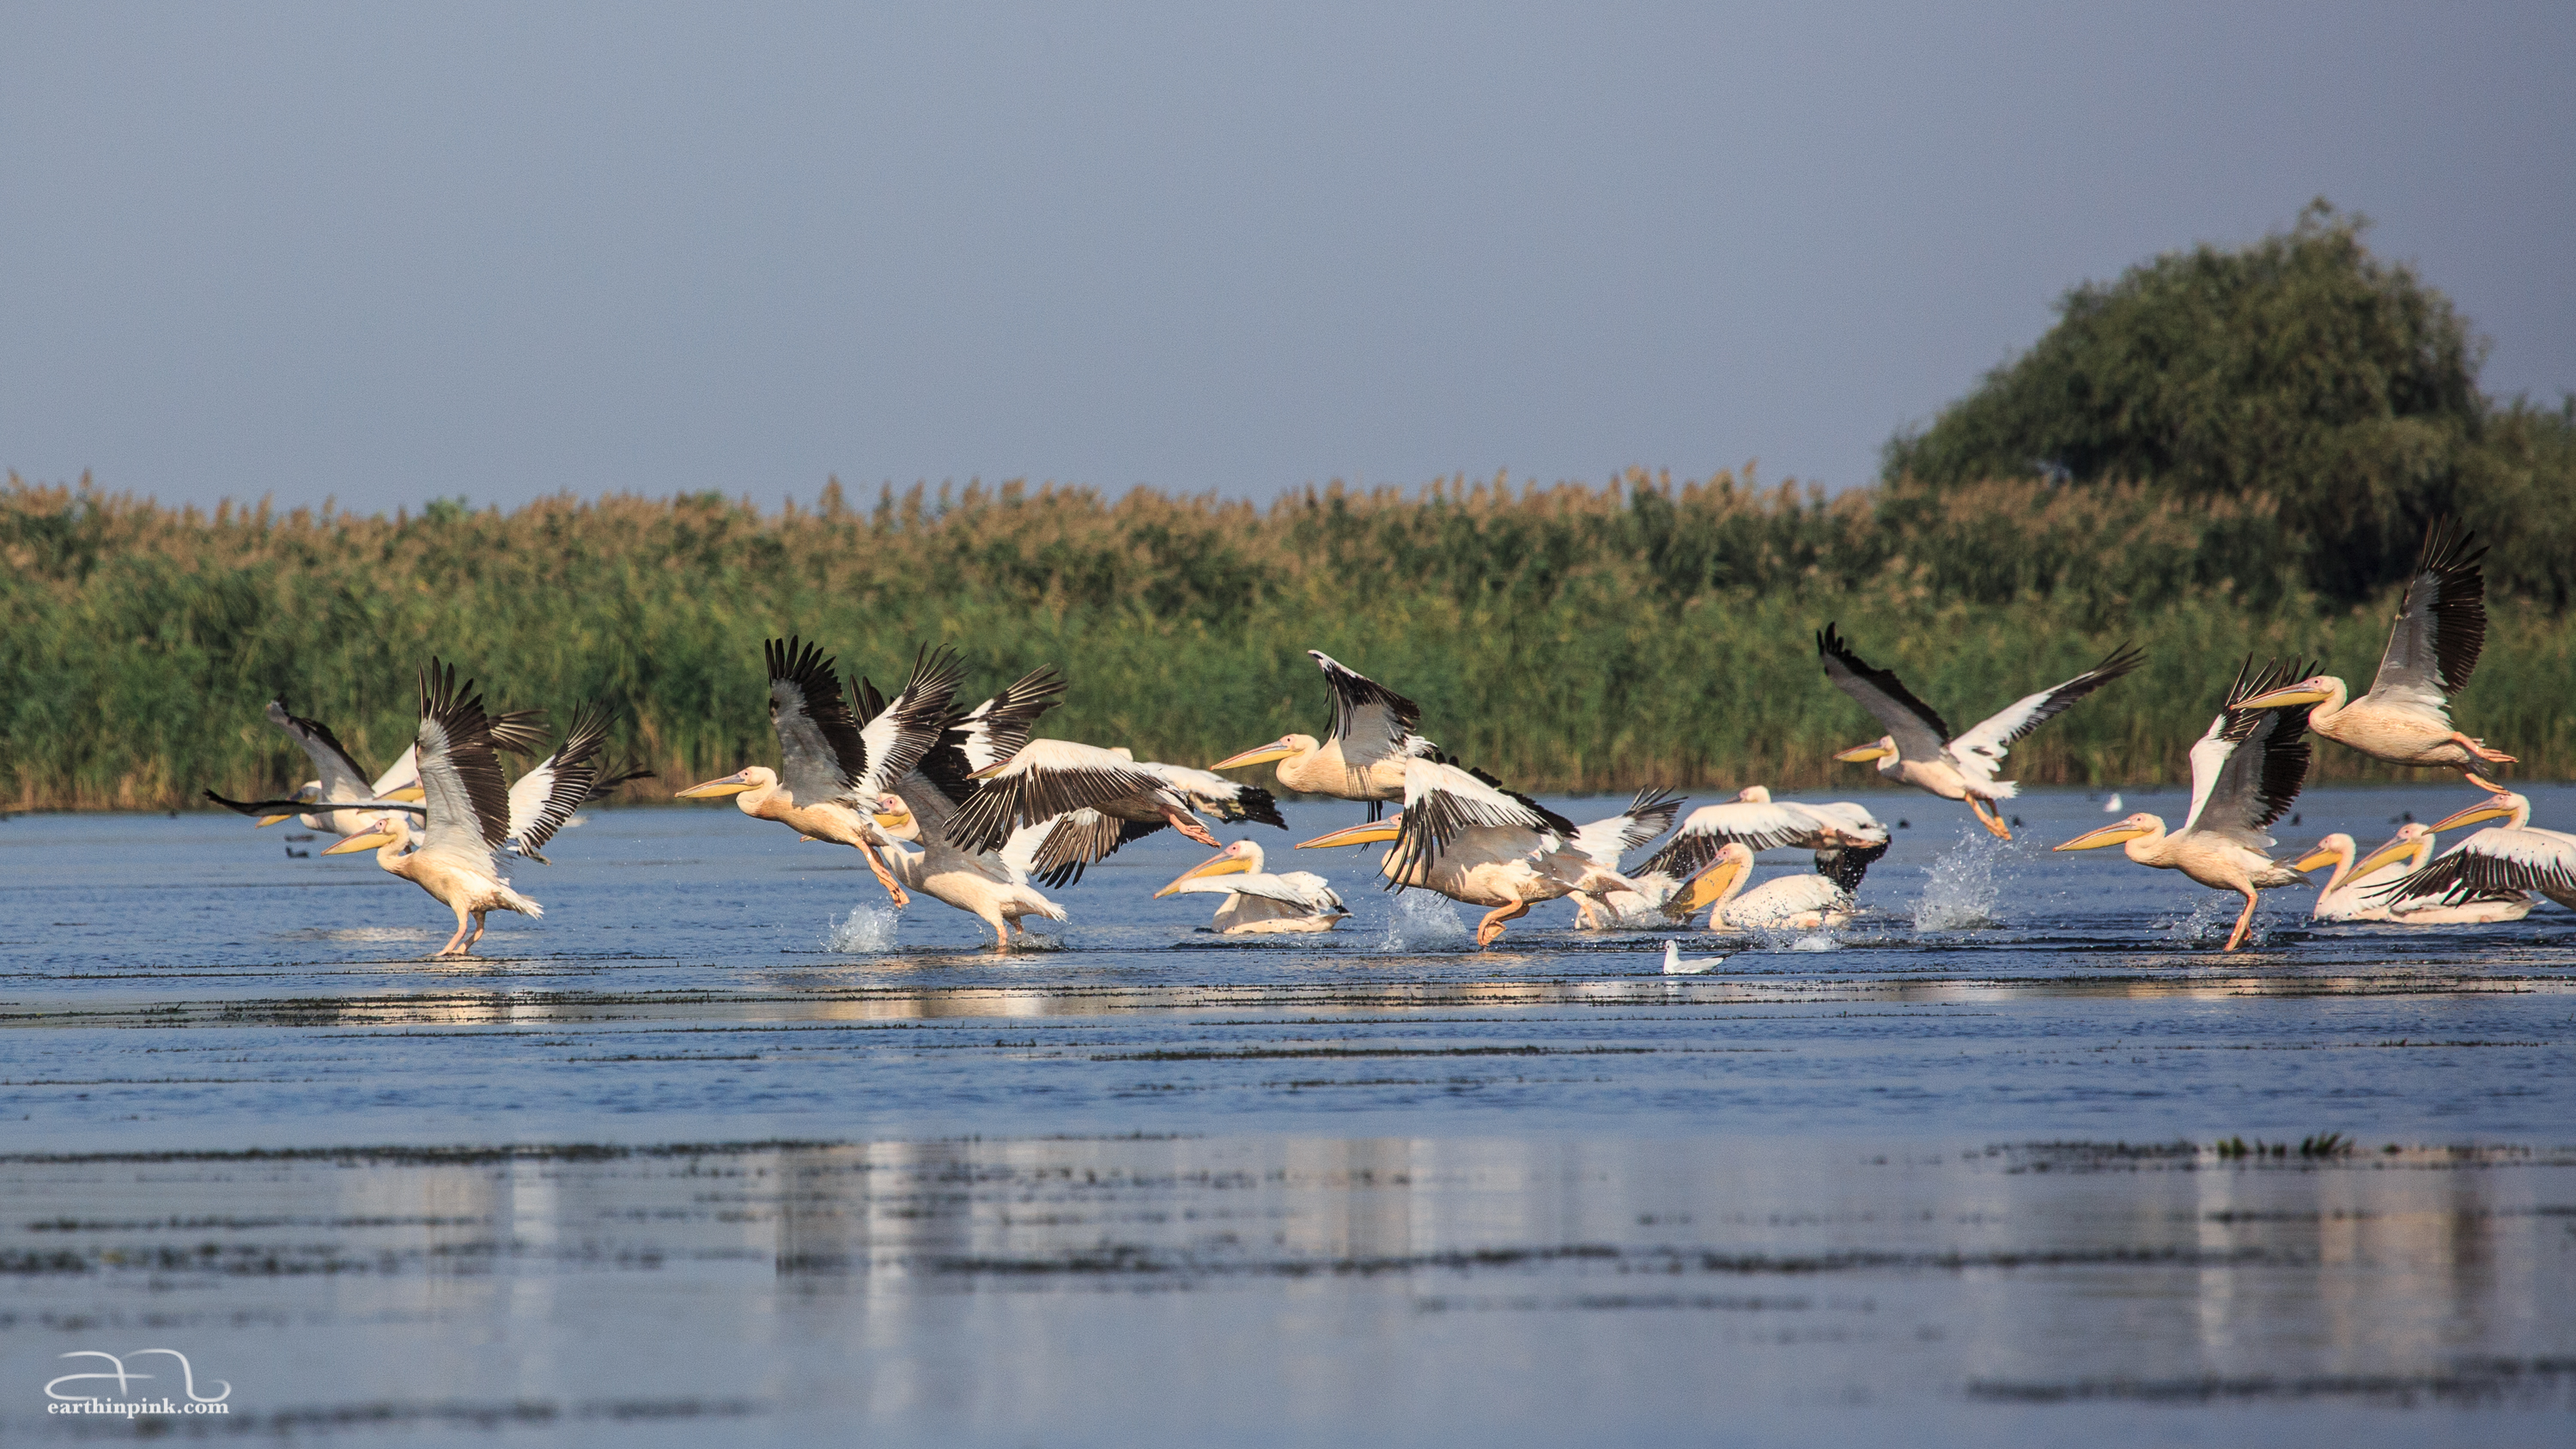 A pod of pelicans about to take flight in the late afternoon light